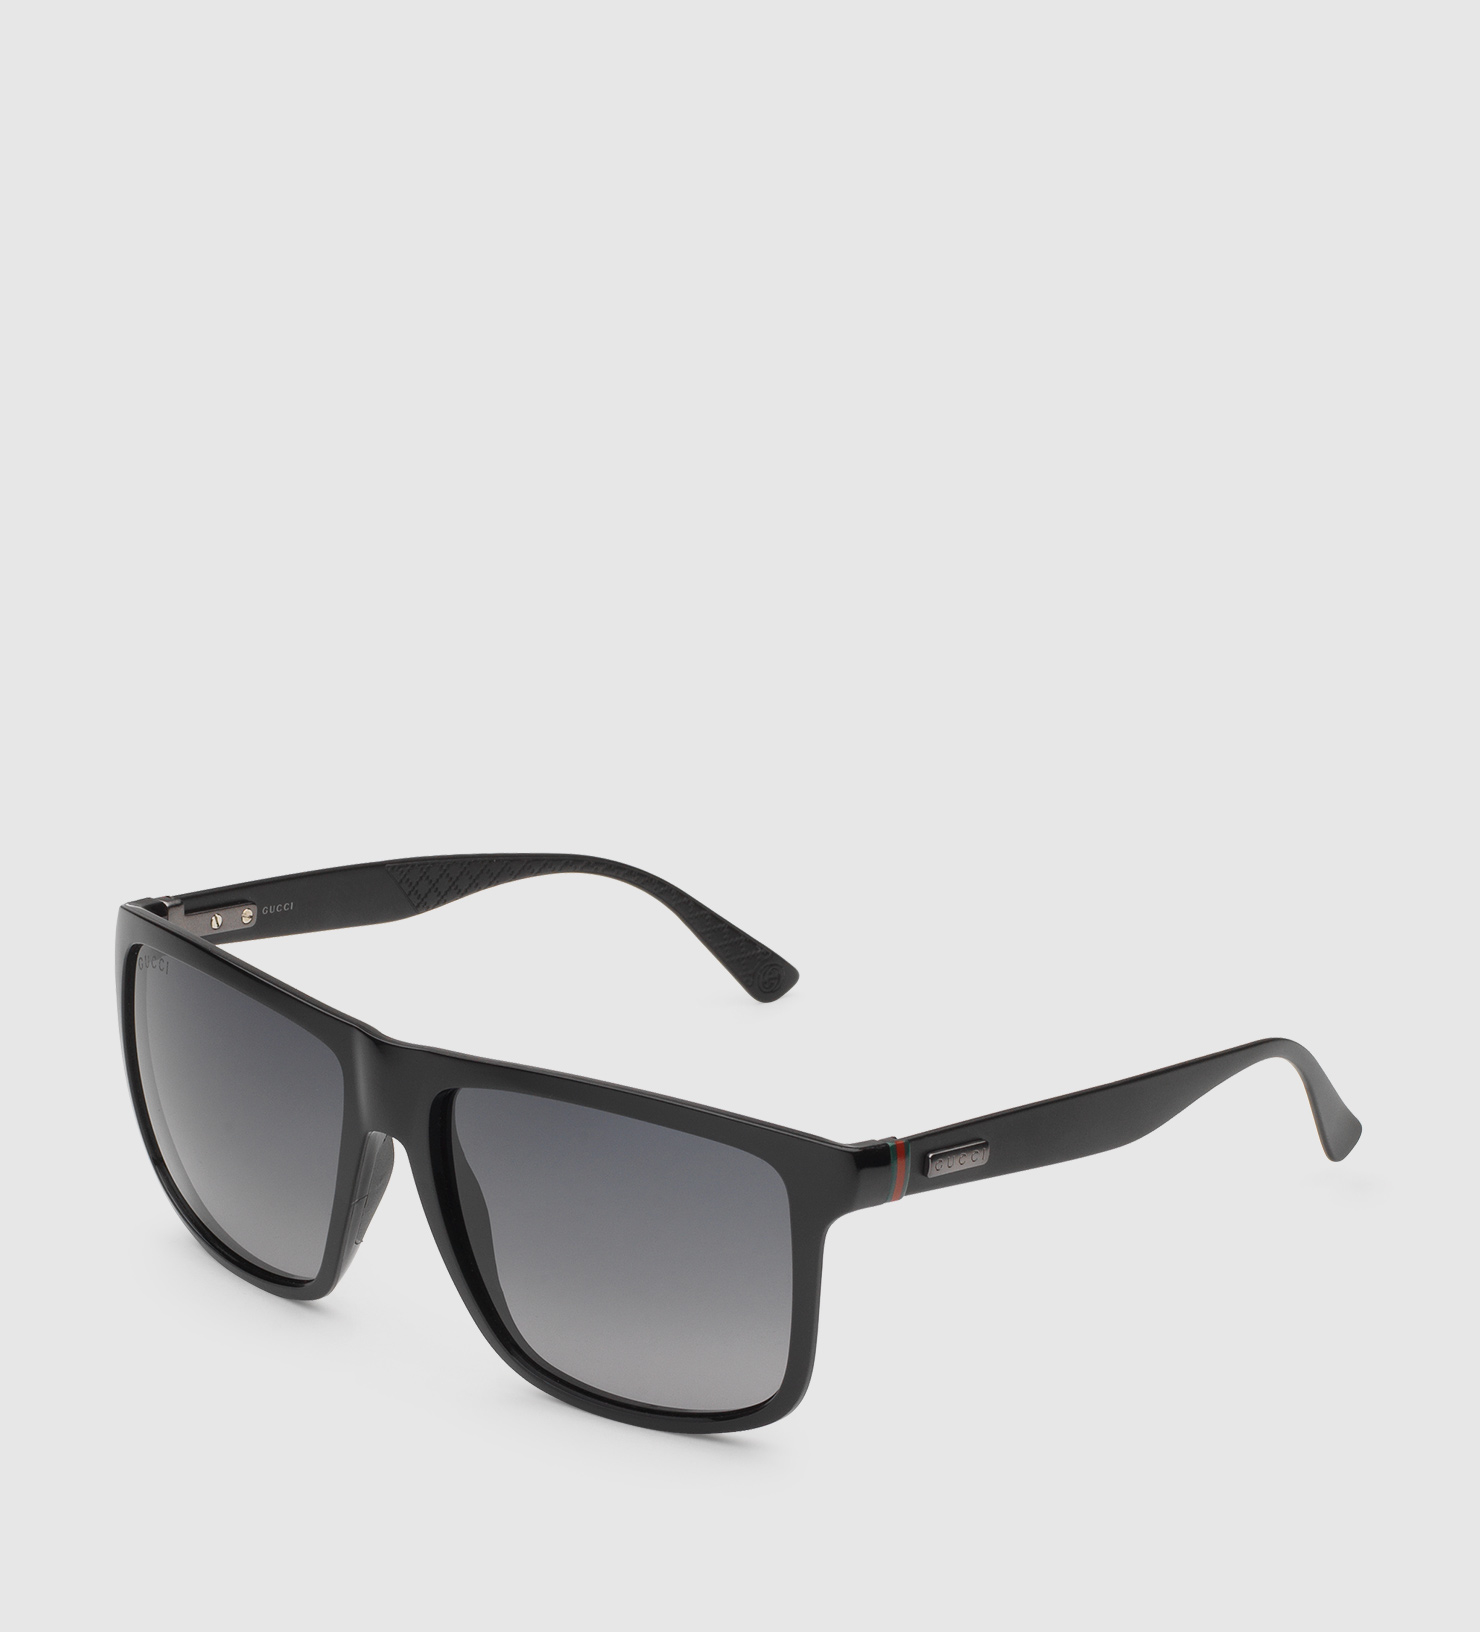 Gucci Square Sunglasses  gucci square frame aluminum and injected sunglasses in black for